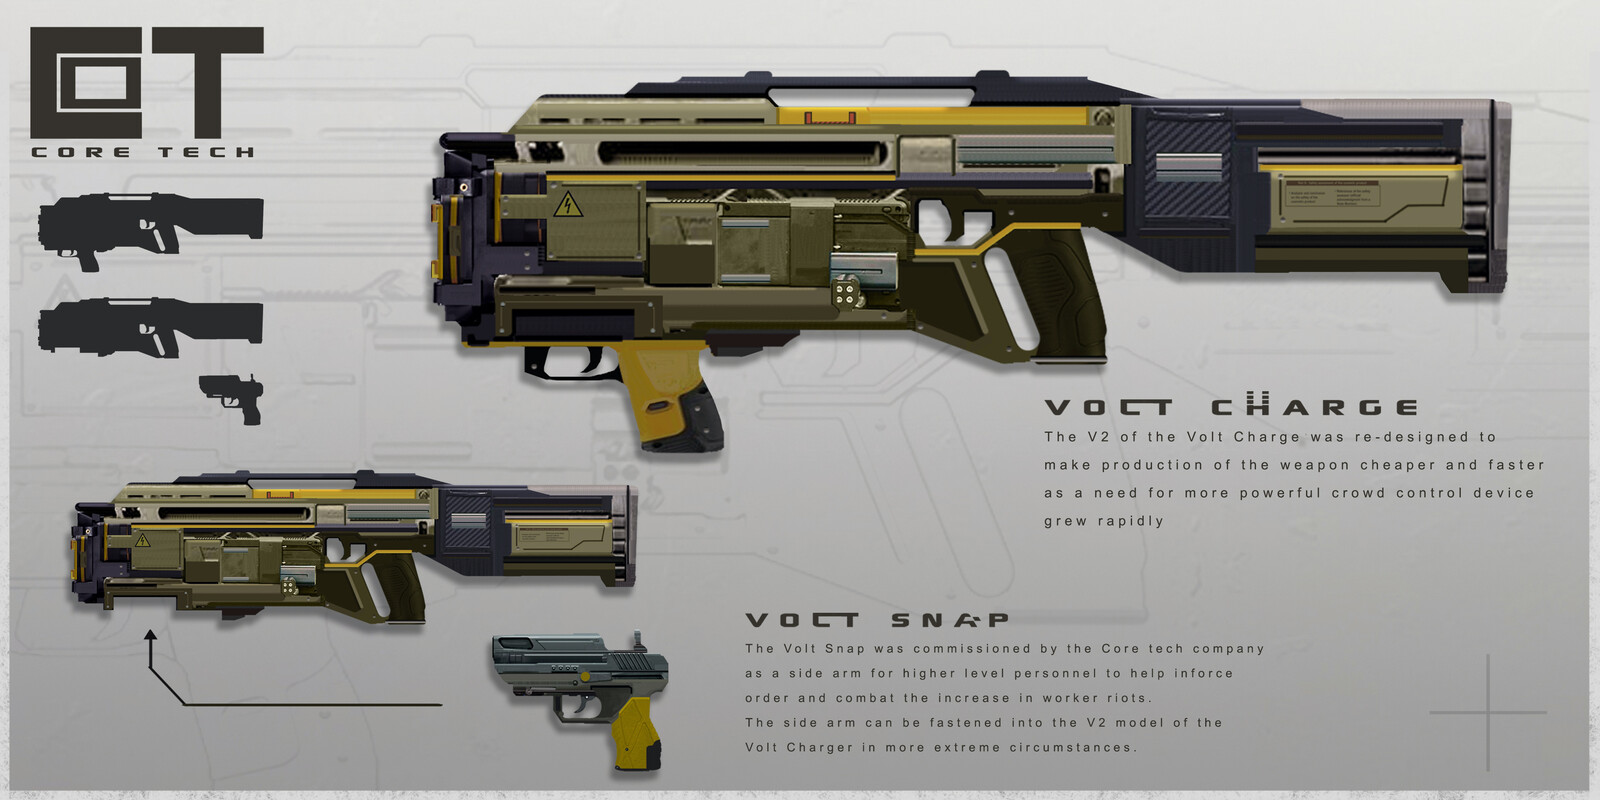 Volt Charge and Snap weapon design